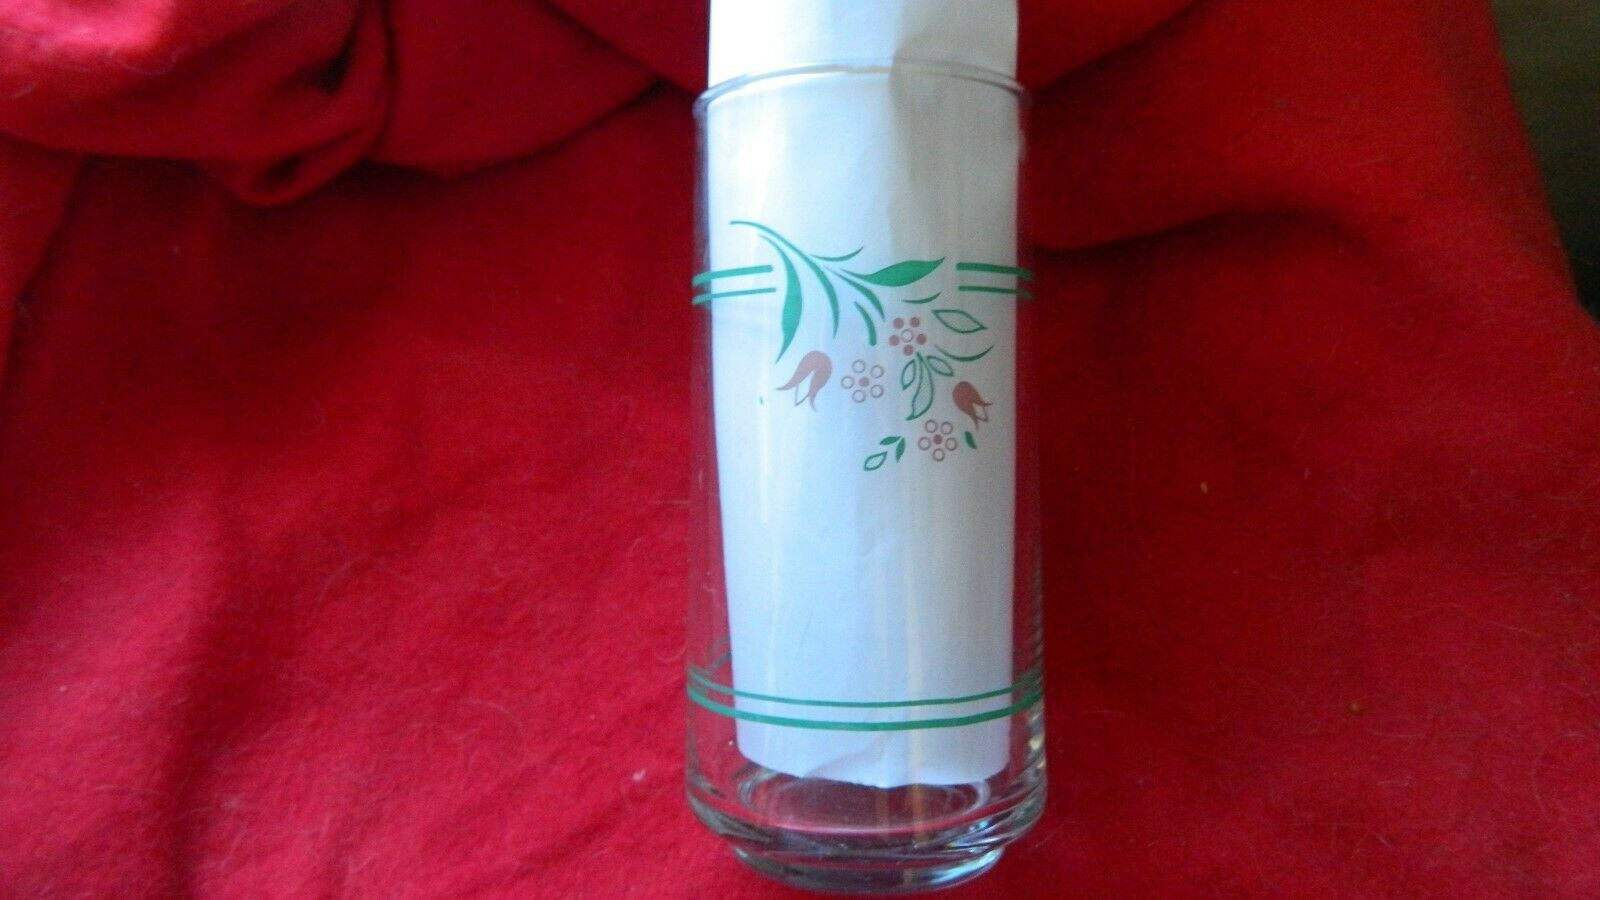 Primary image for CORELLE ROSEMARIE 16 OUNCE ICE TEA TUMBLER DRINKING GLASS x1 FREE USA SHIPPING